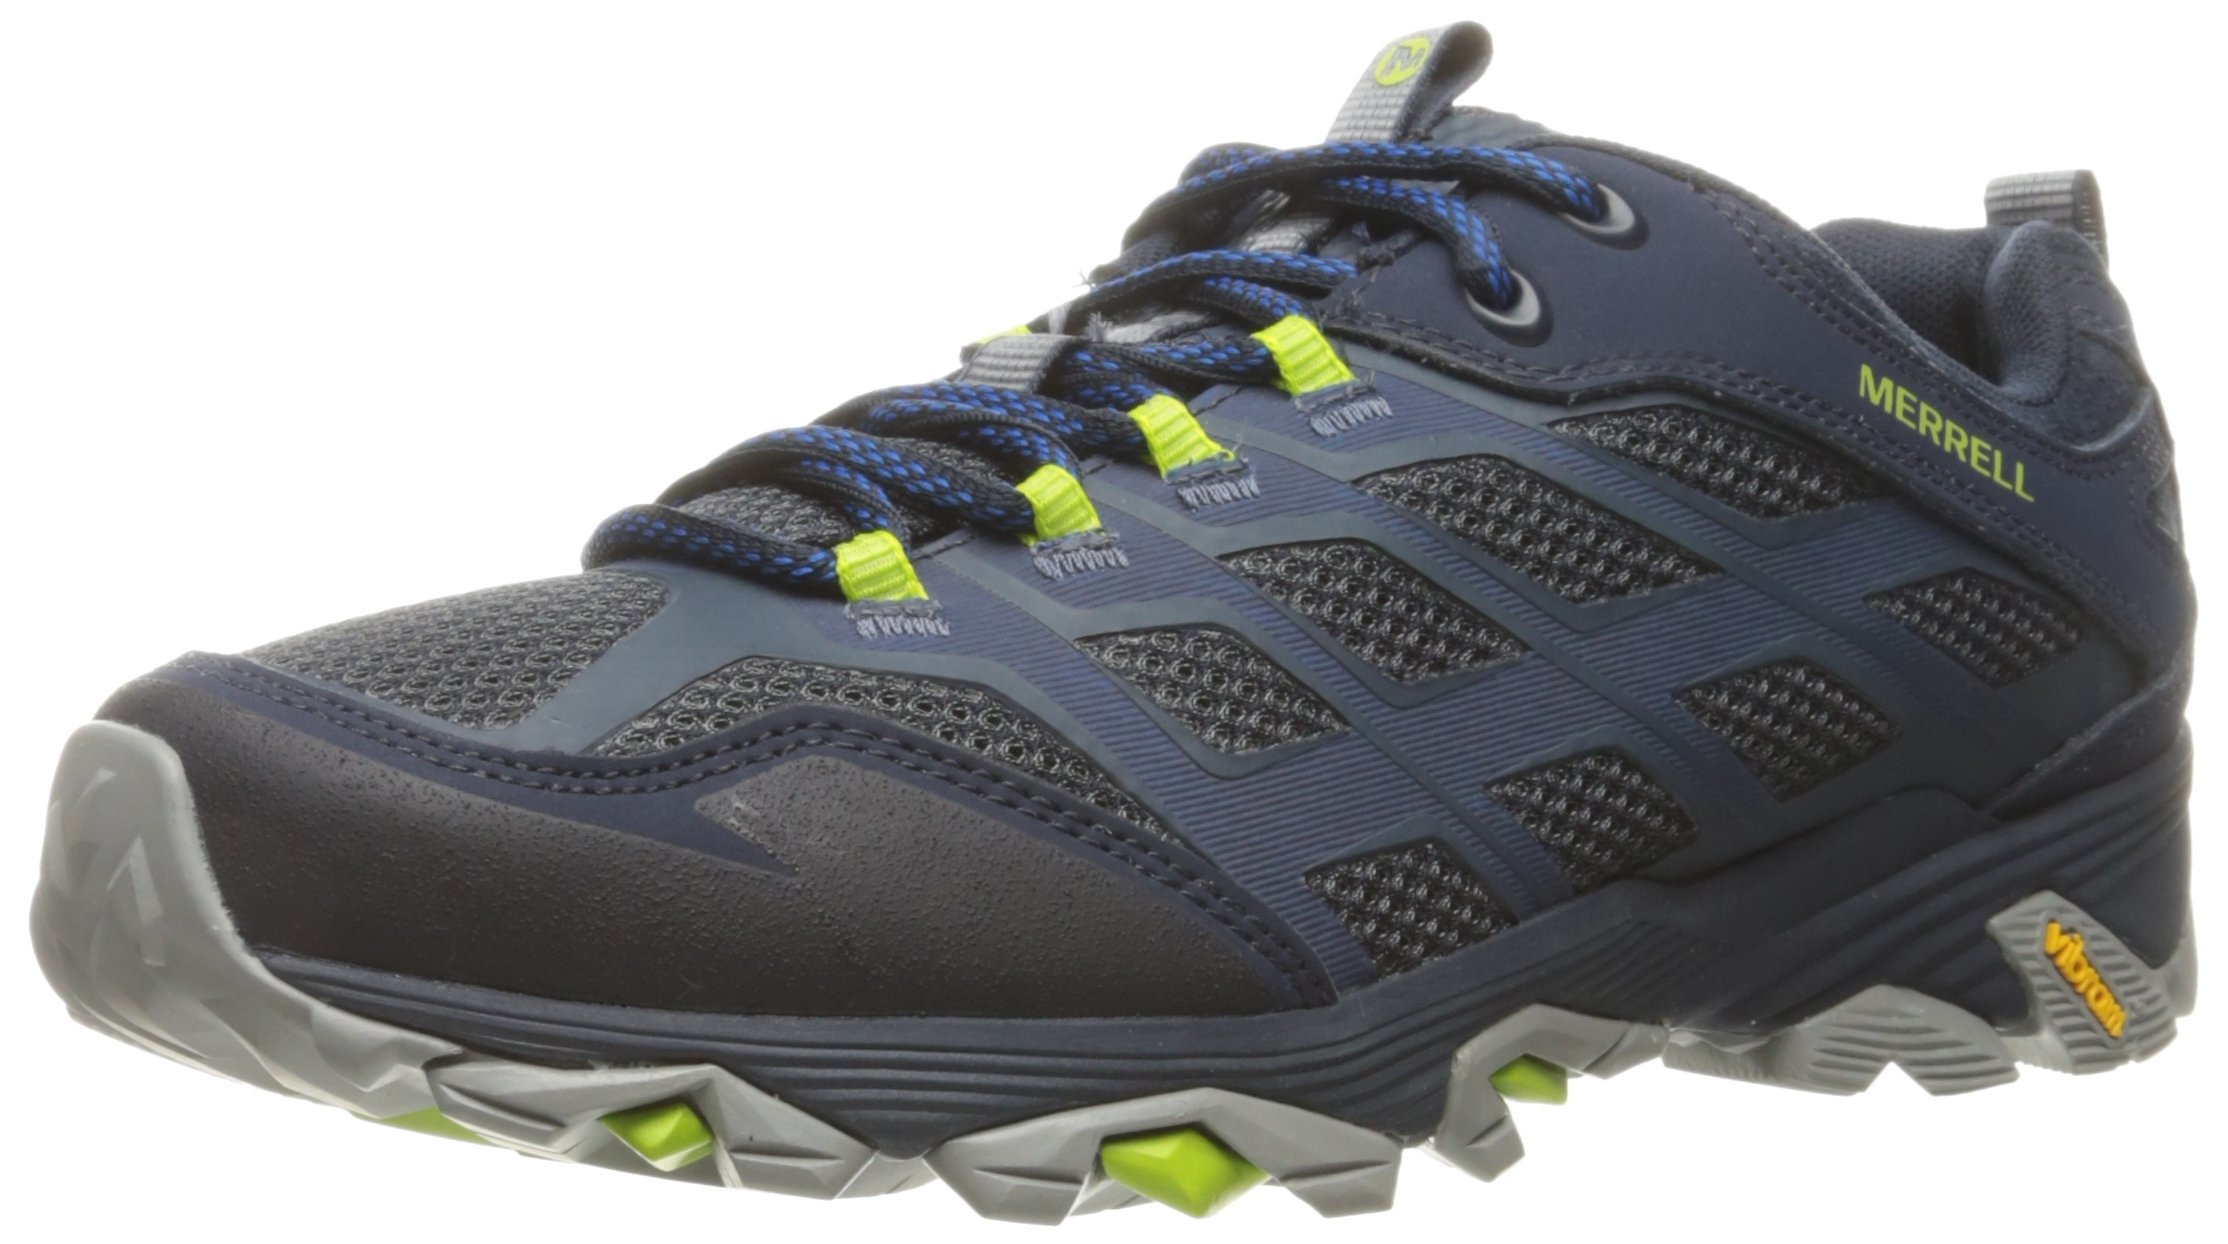 Merrell Men's Moab FST Hiking Shoe, Navy, 12 M US by Merrell